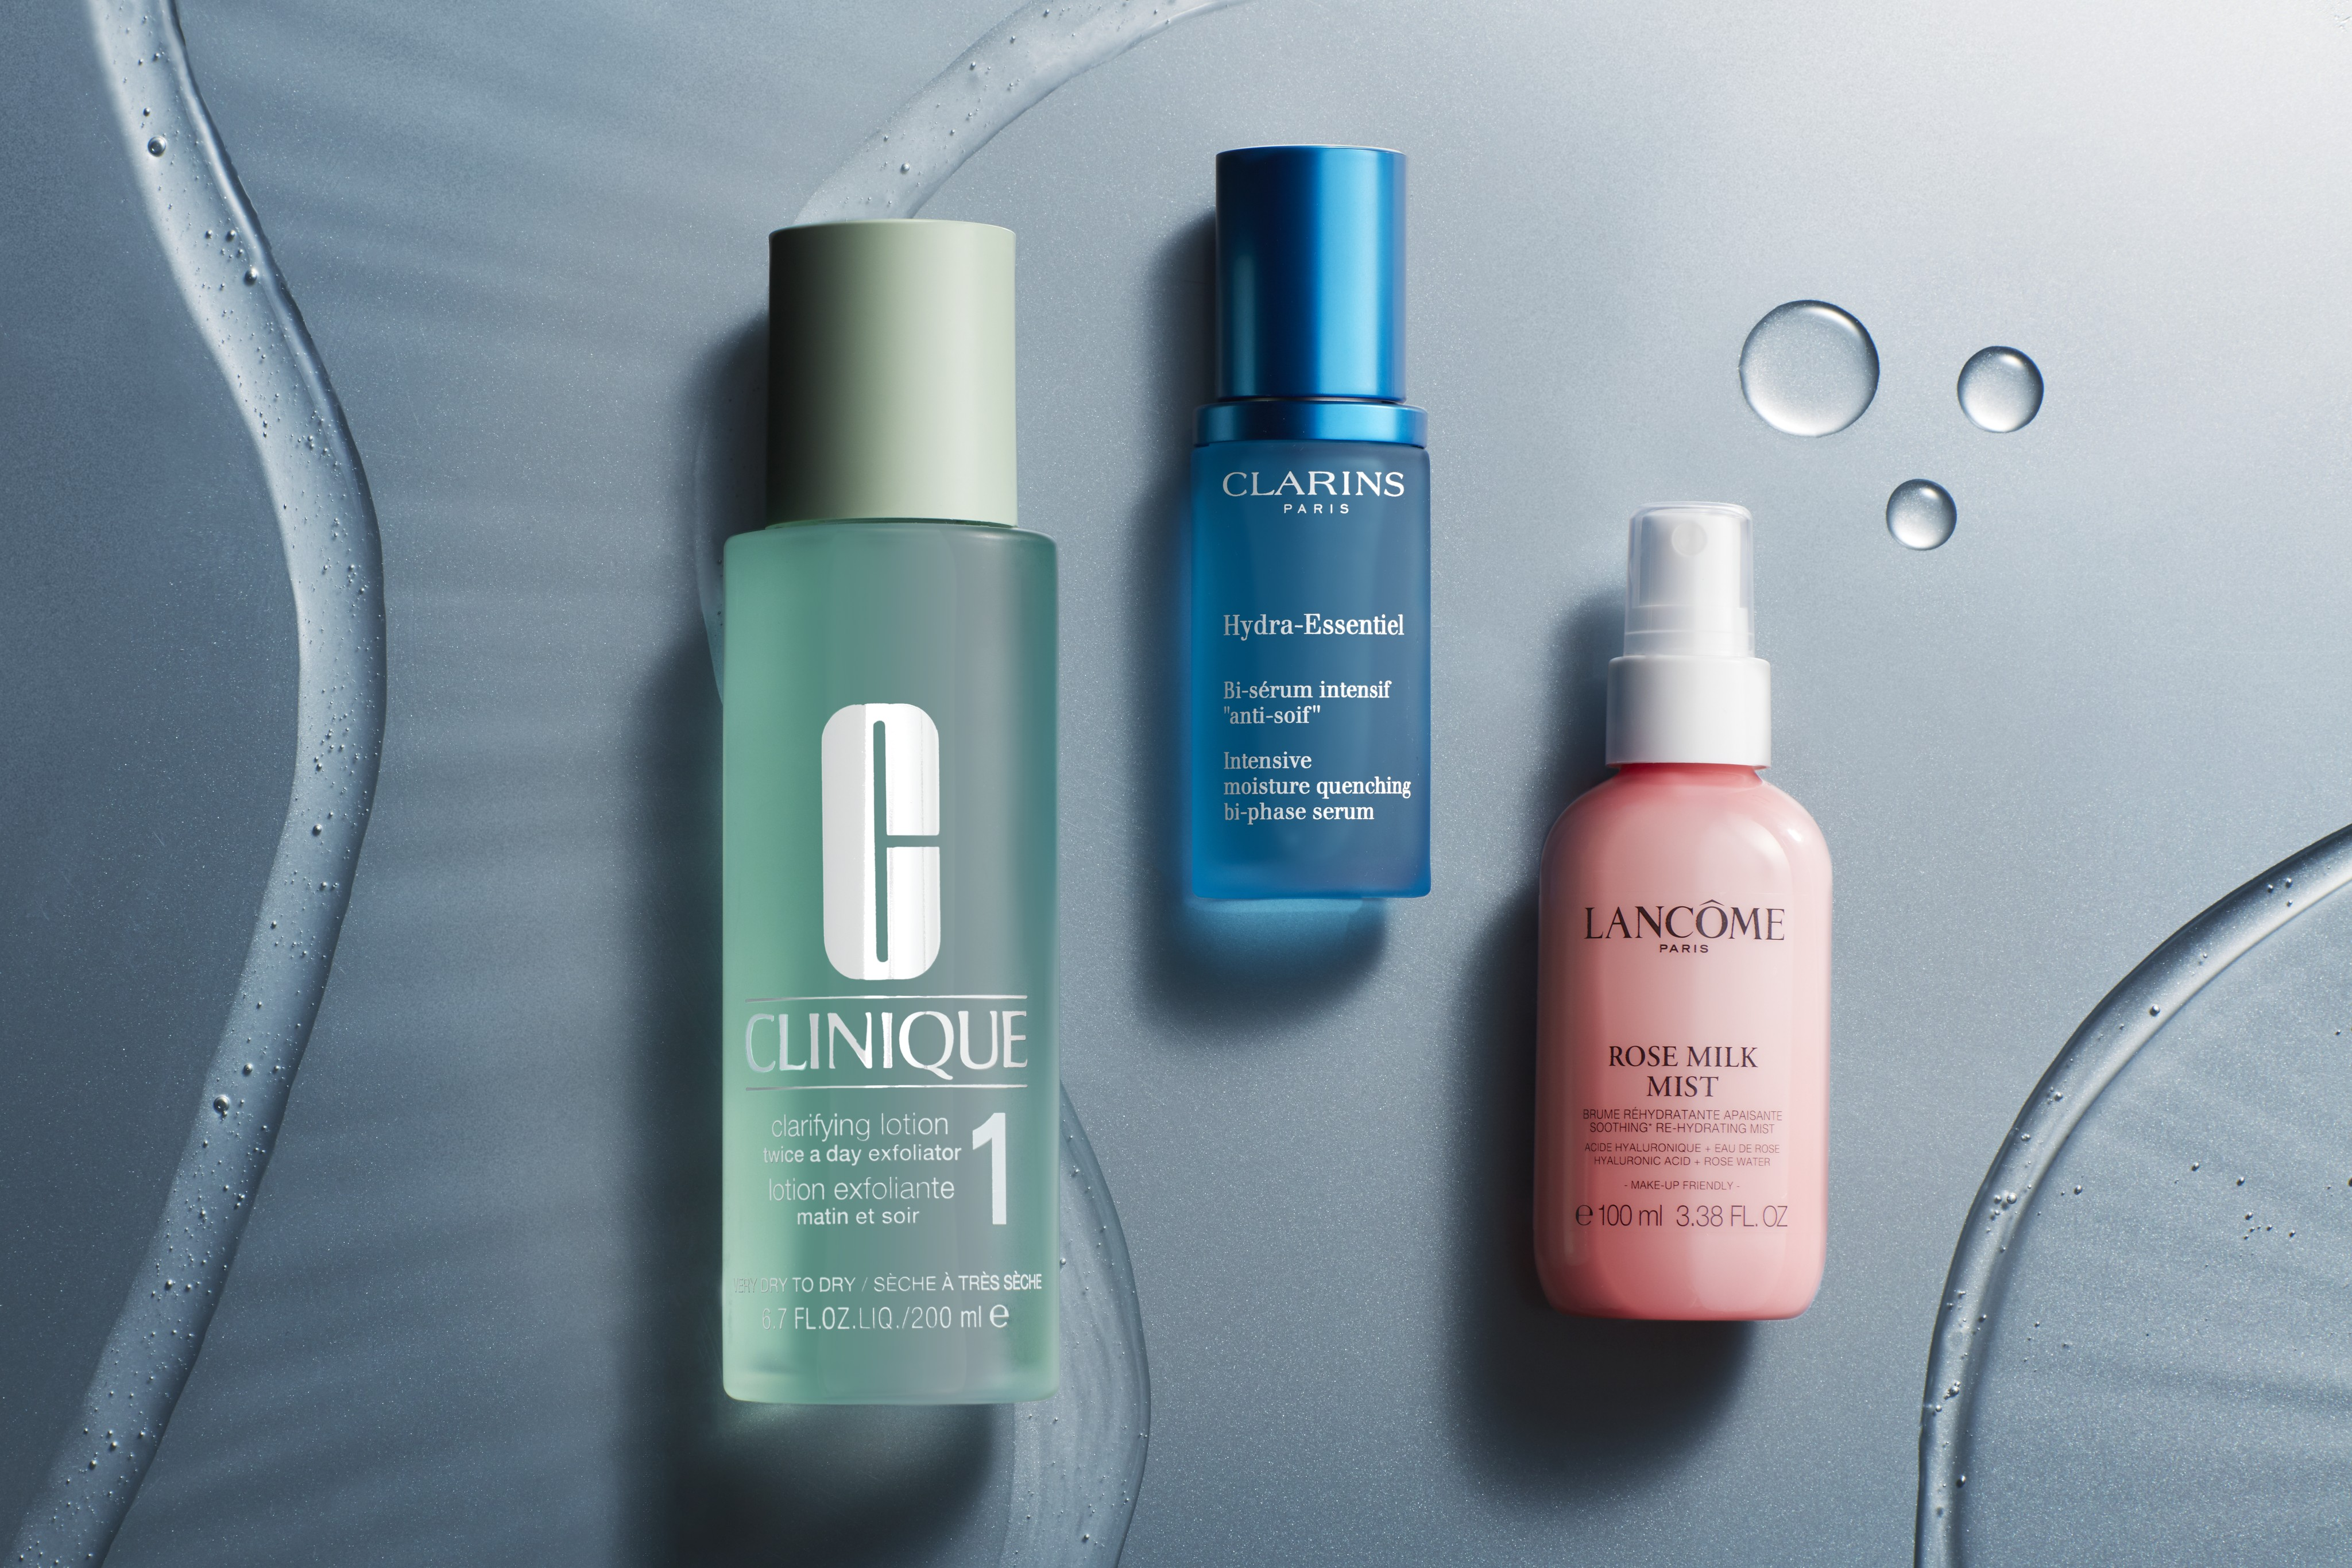 Skincare-product-hyaluron-gel-texture-clinique-clarins-lancome-unlimited-Web-Rendition